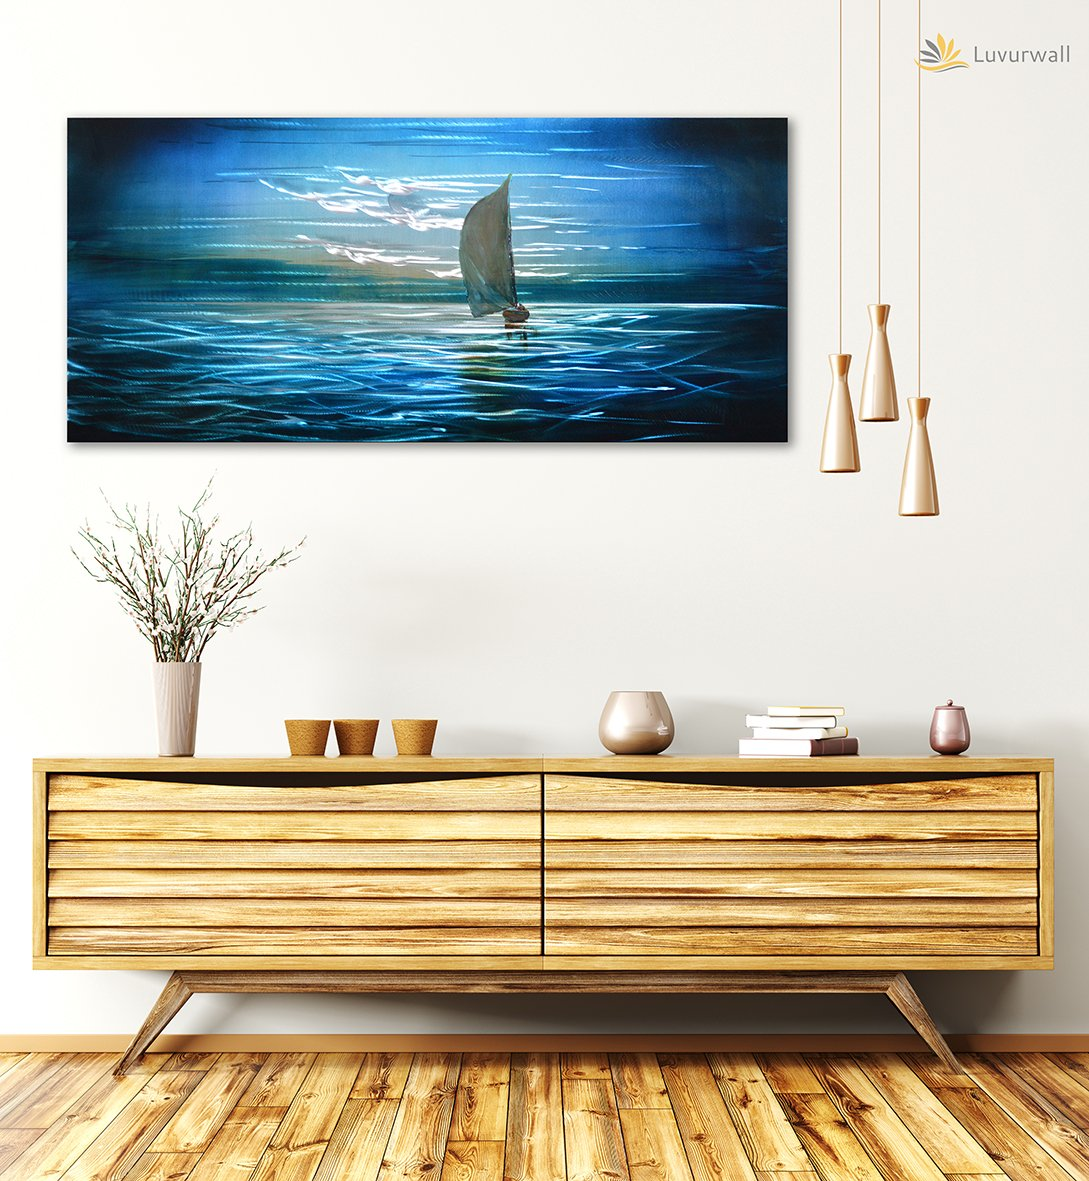 Luvurwall Small Boat Metal Wall Art, Metal Wall Art - Luvurwall